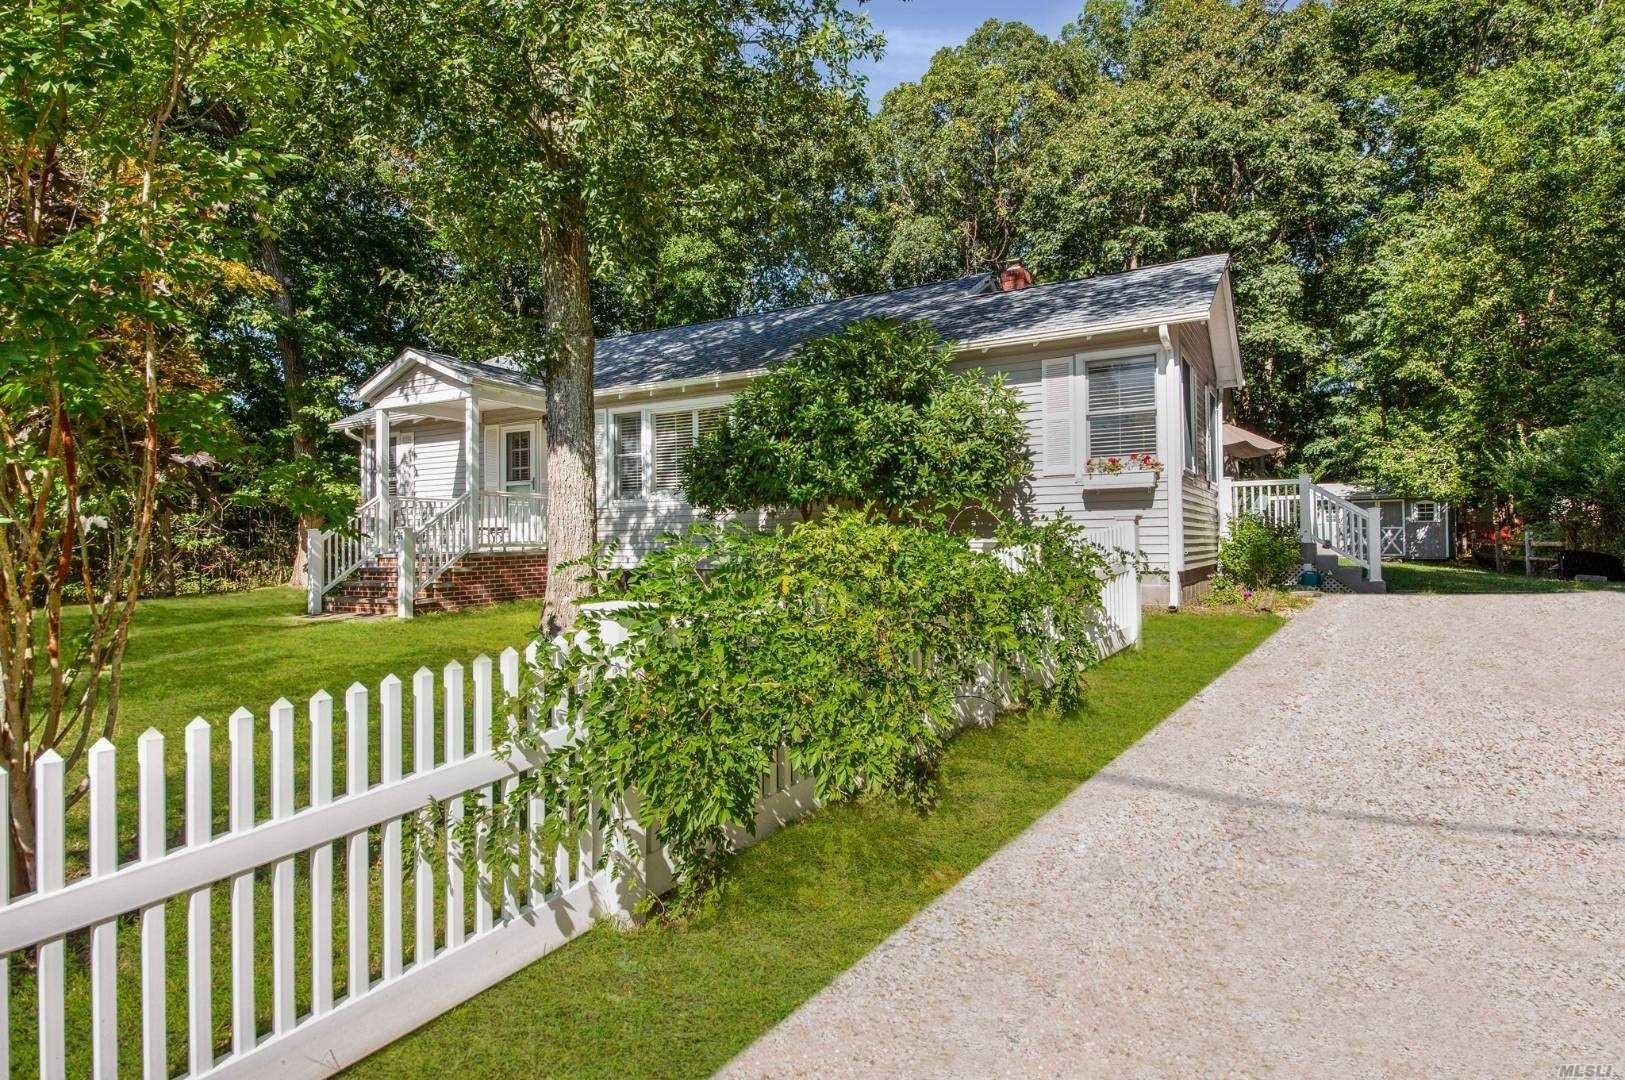 16 Bowditch Rd, Shelter Island, NY 11964 - MLS#: 3216432